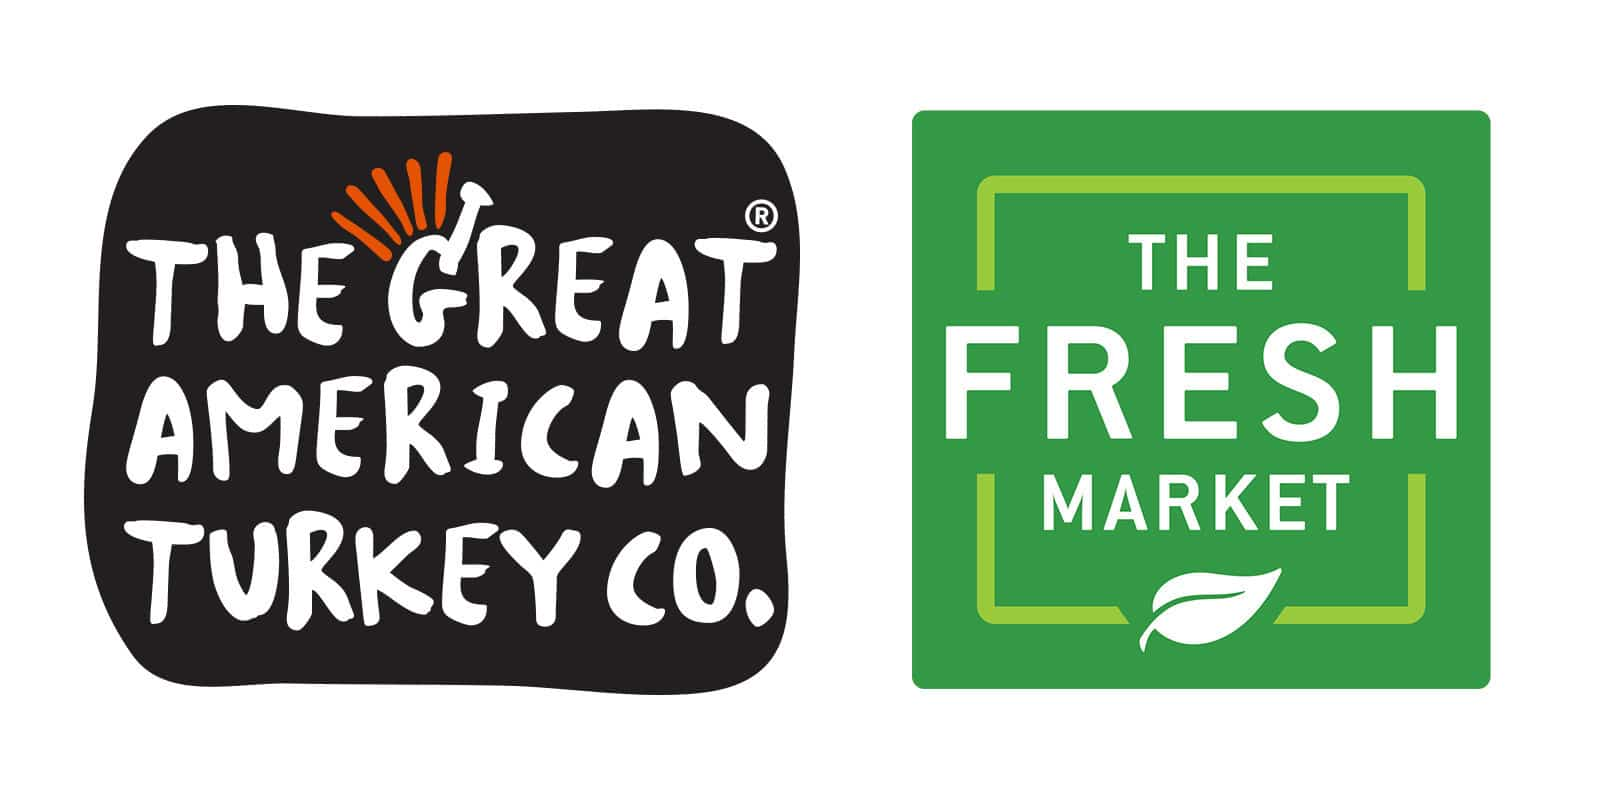 The Great American Turkey Co. Expands into The Fresh Market